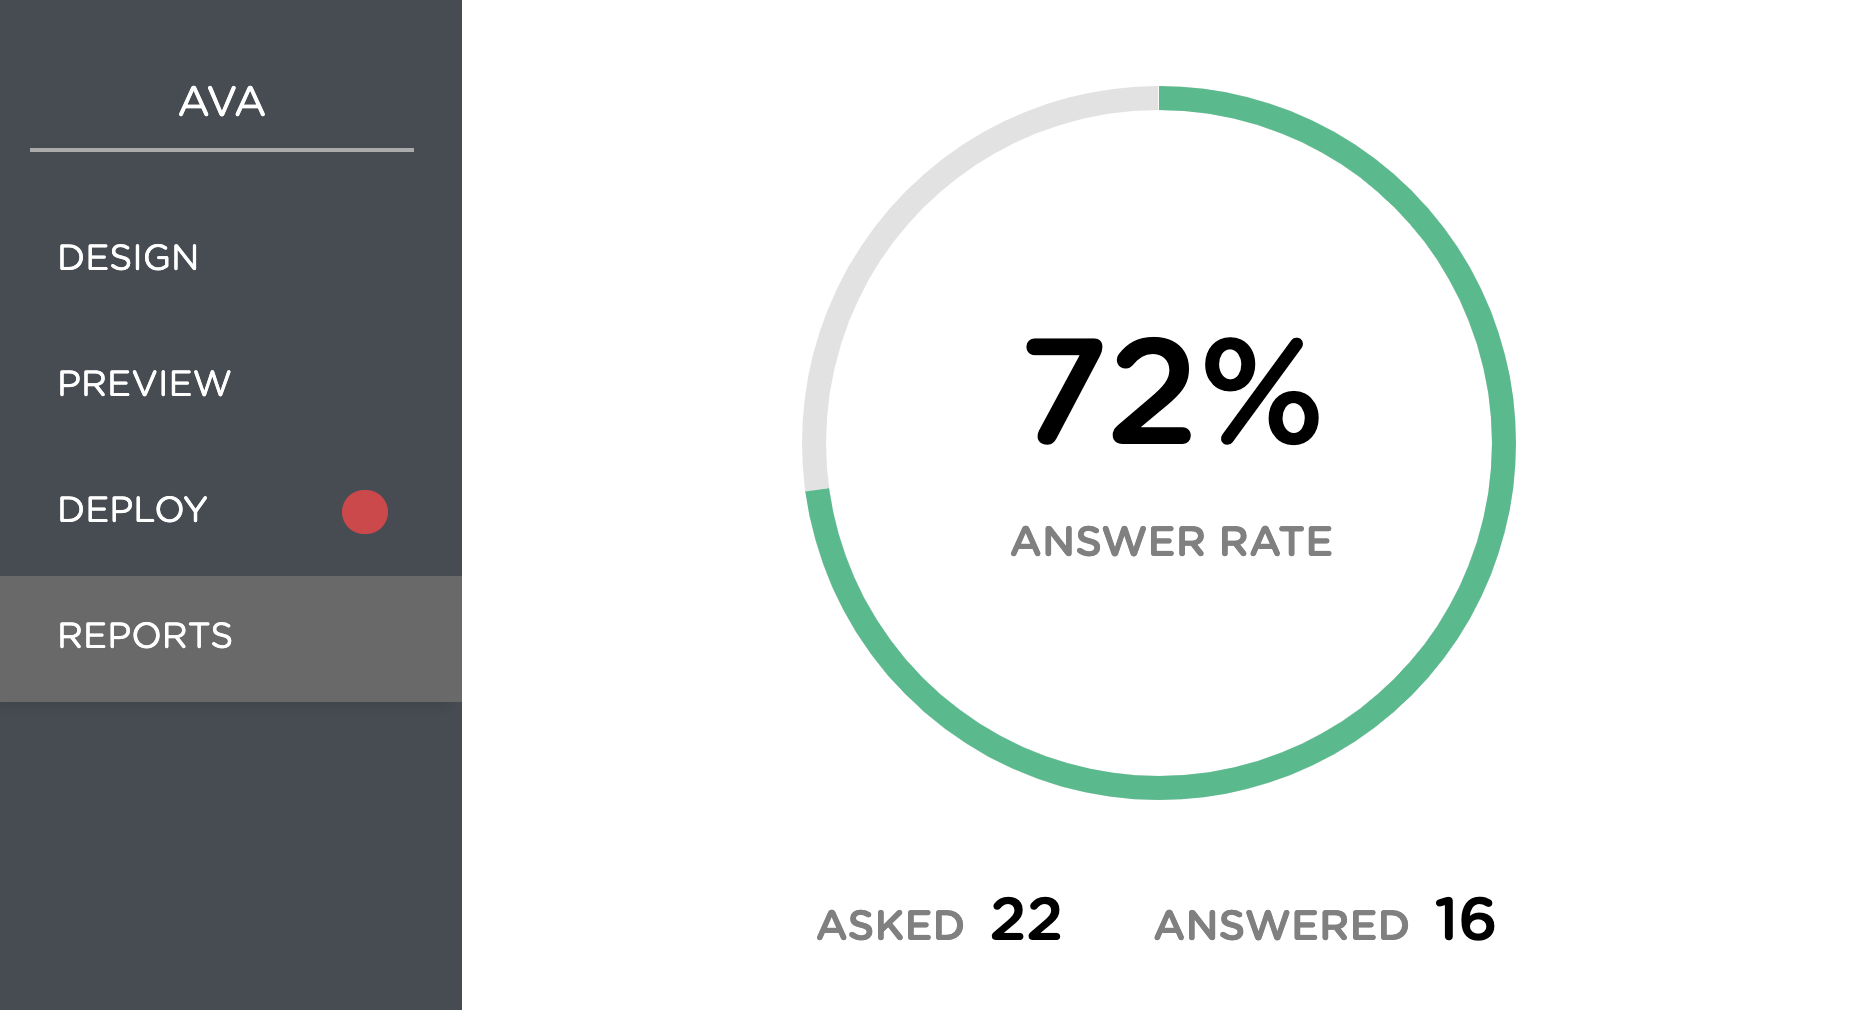 Reports page shows question answering rate of the chatbot